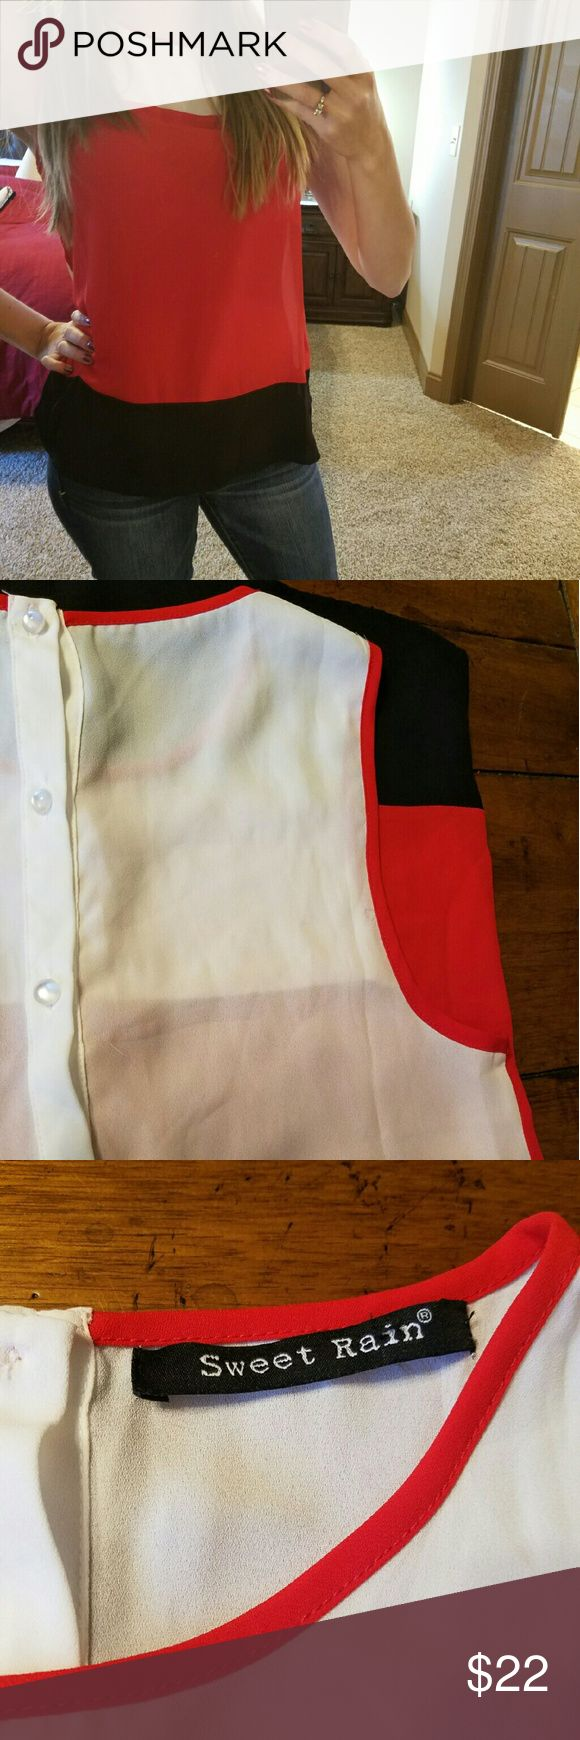 Bogo sale! Color Block Top Super cute Color Block Top with buttons down back  Red, black, and white Tops